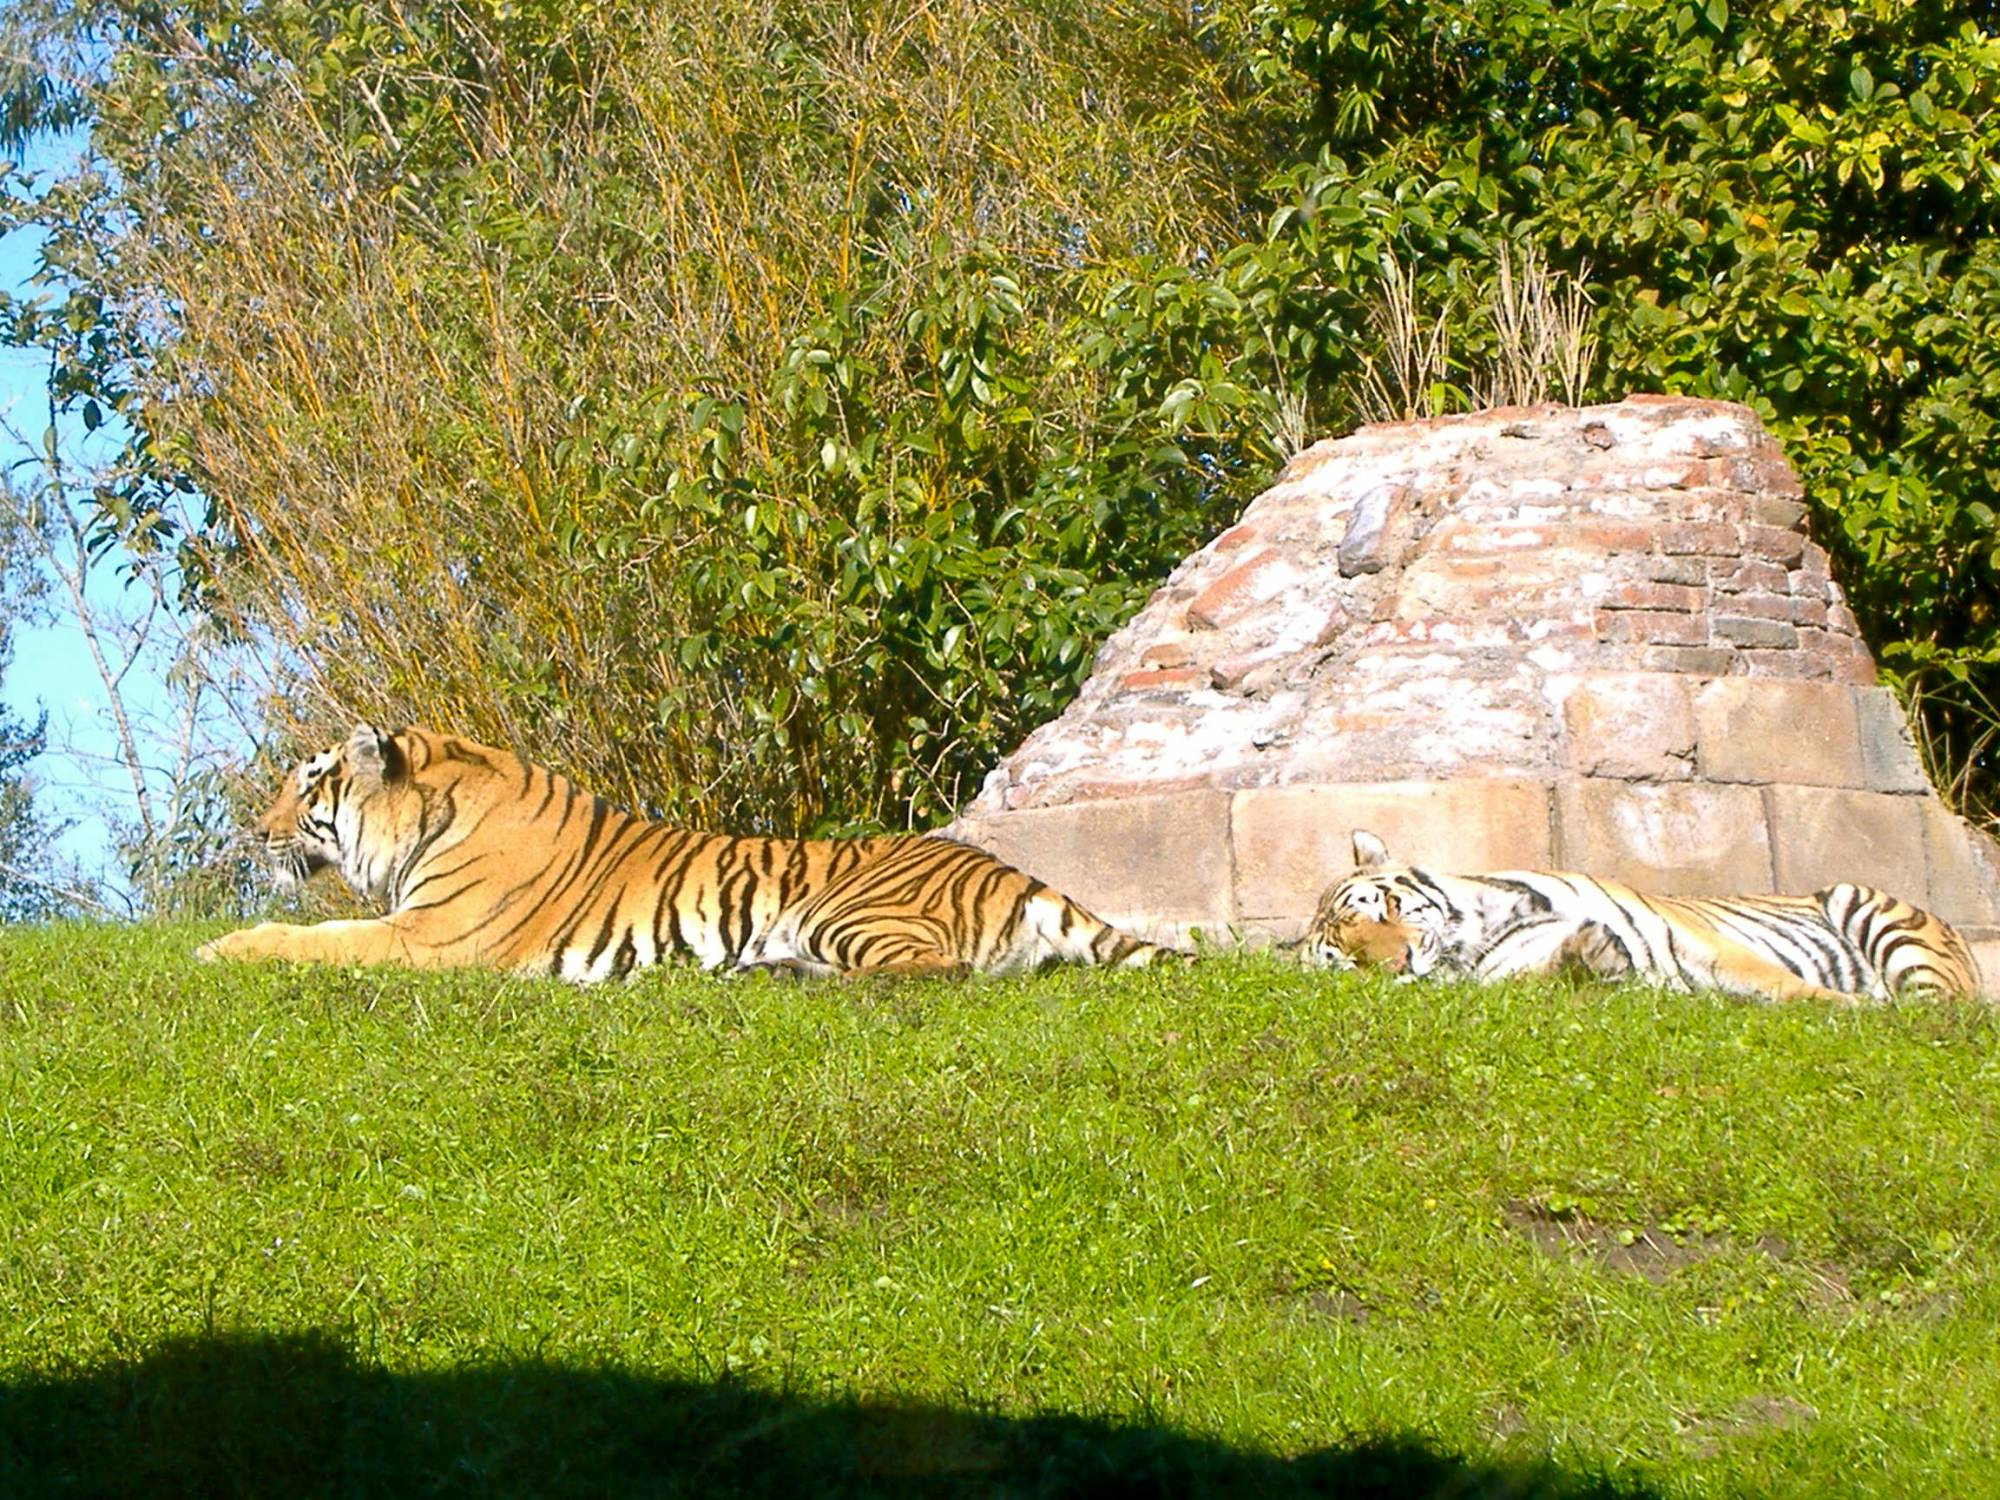 Maharajah Jungle Trek - Tigers